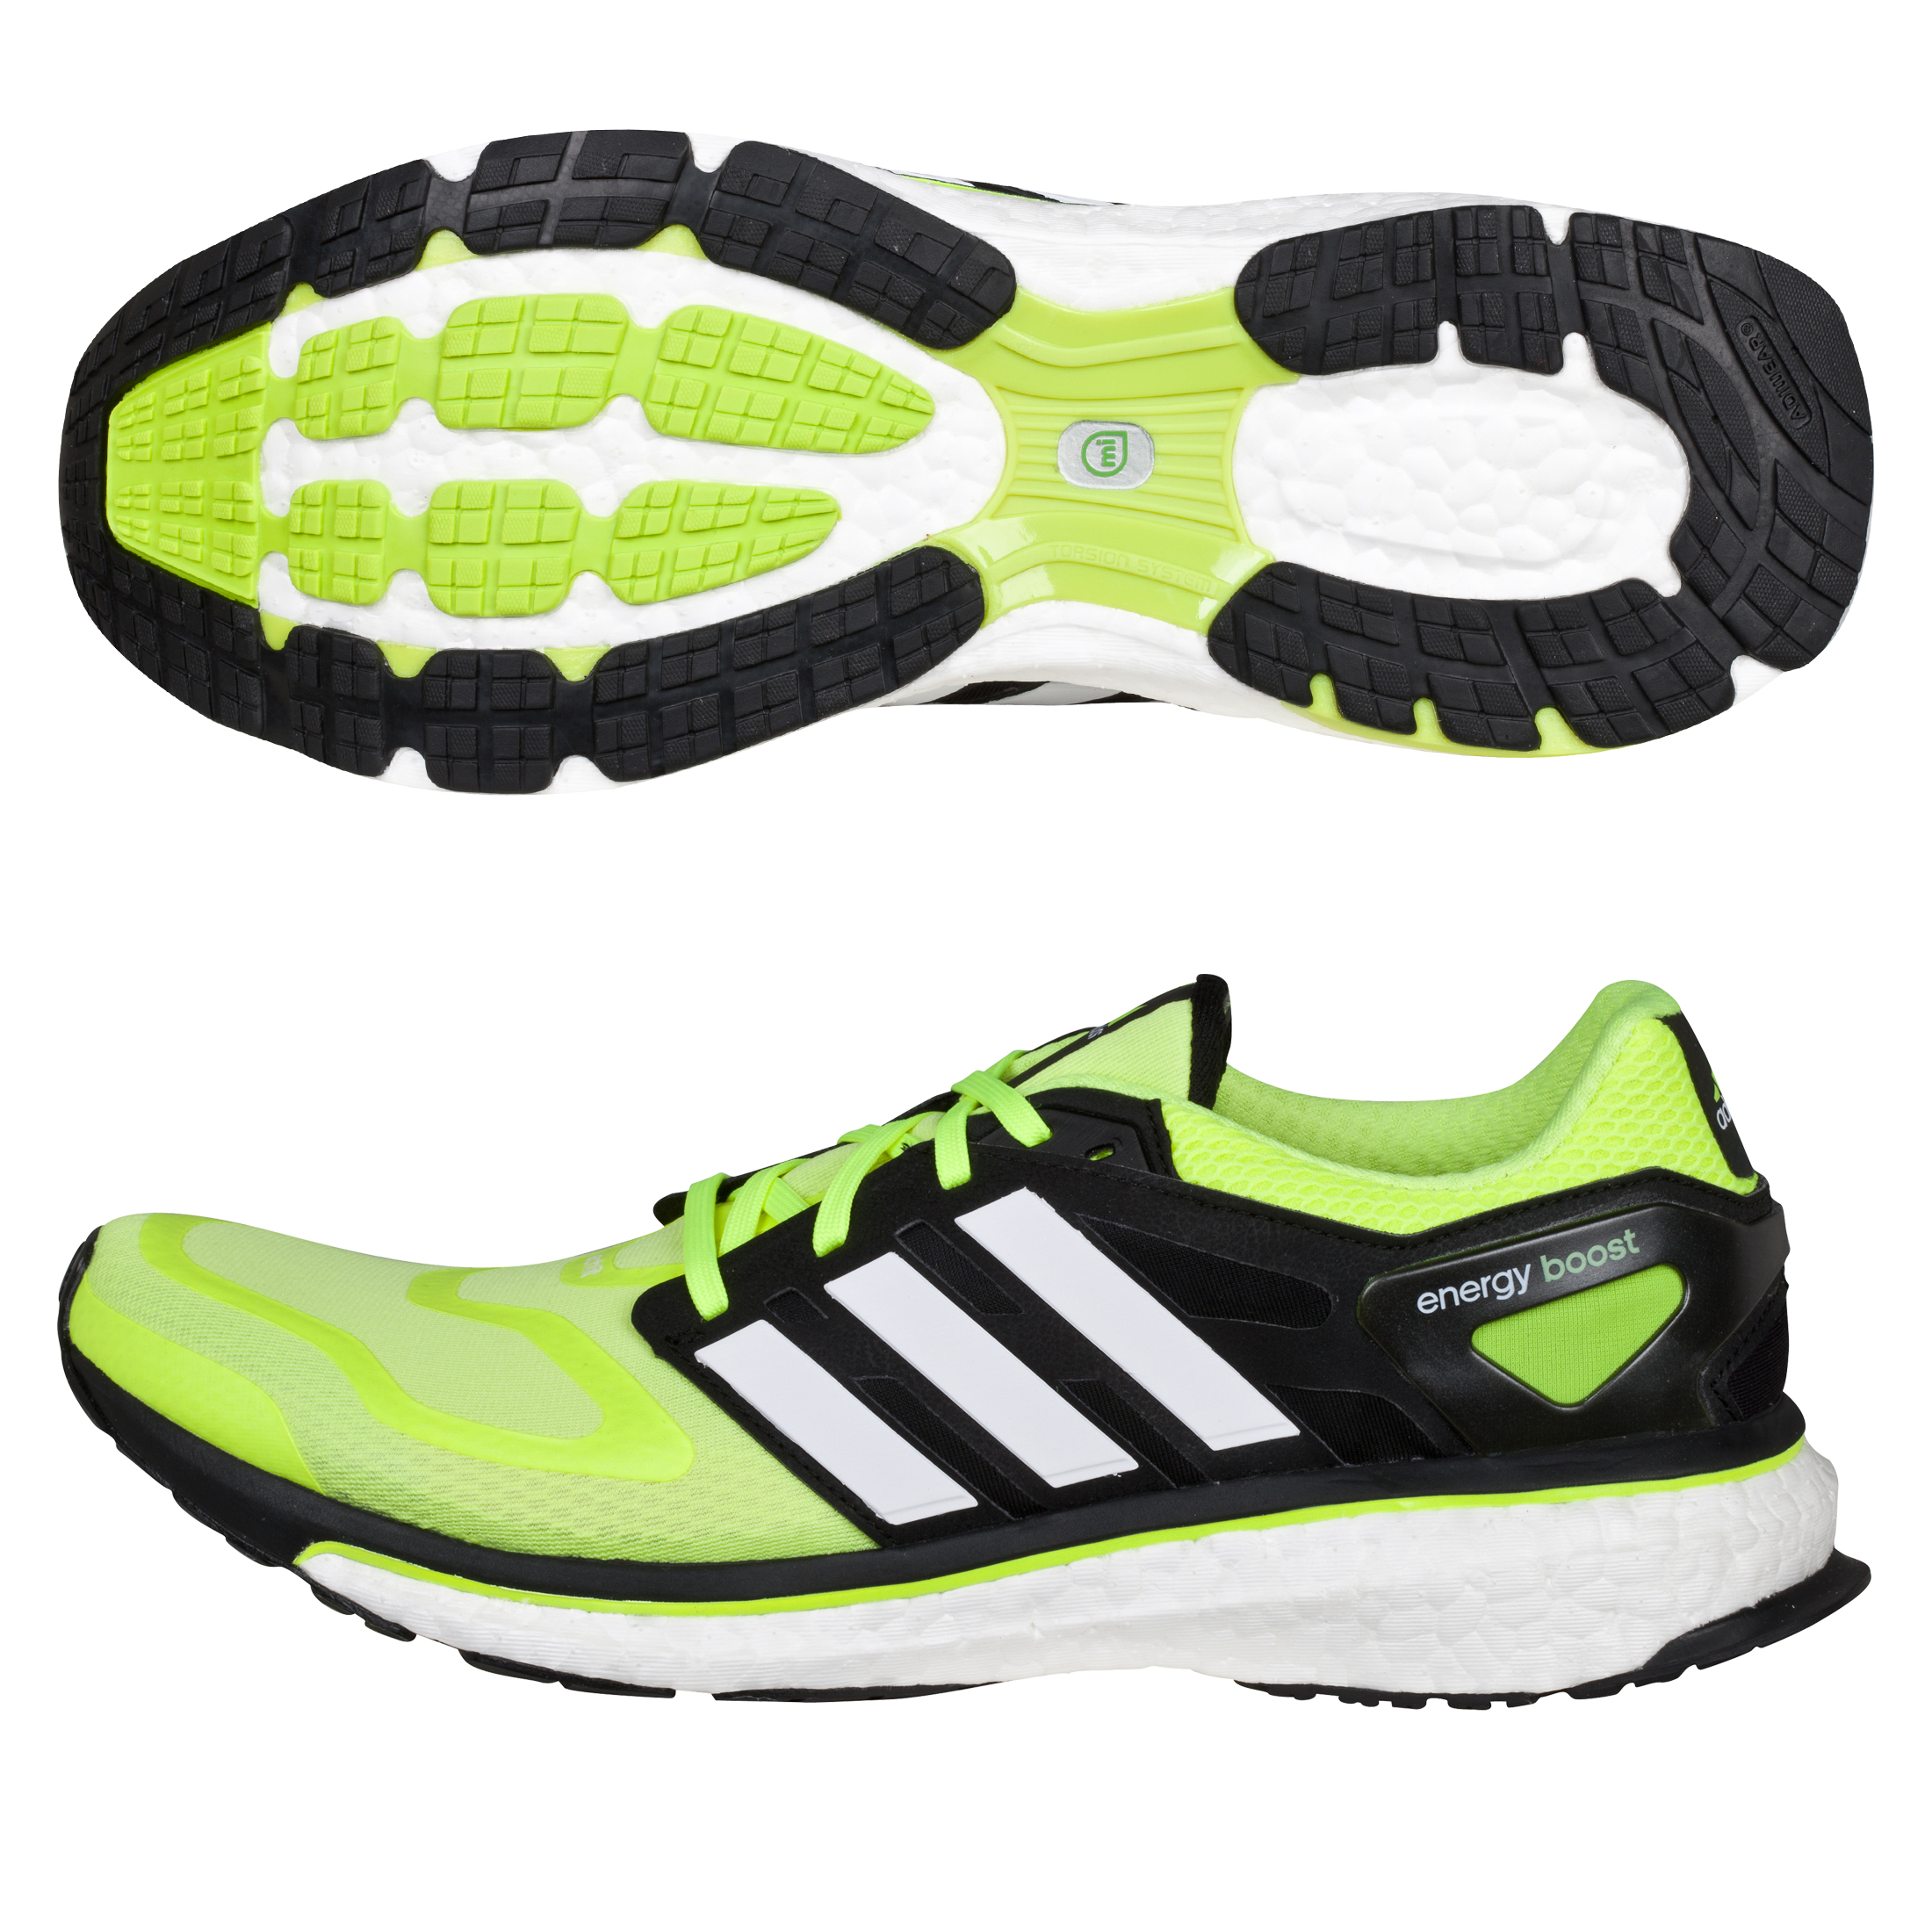 Adidas Energy Boost - Electricity/White/Black Blue